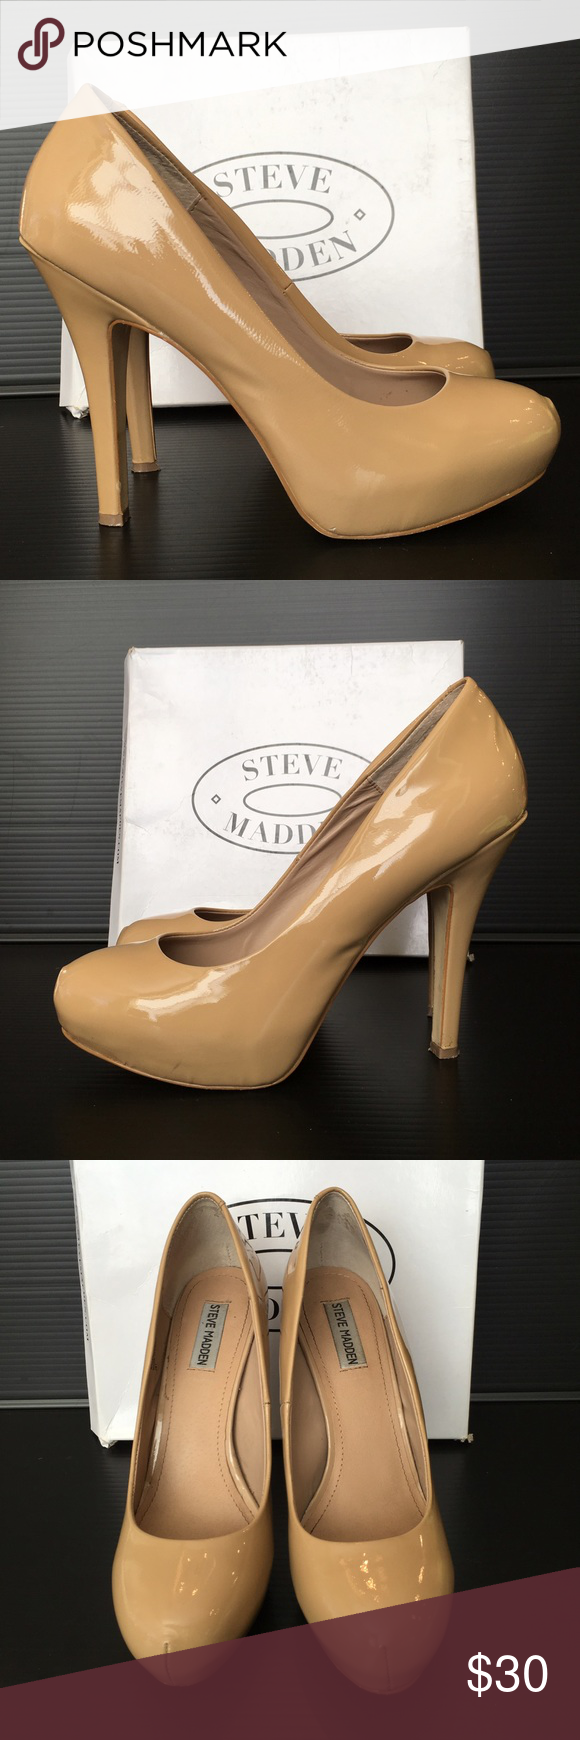 Steve Madden Nude Patent Leather Platform Pumps Beautiful nude patent leather with hidden platform and approx 5 inch heel. This nude  platform is the perfect heel to elongate your legs. Box included. Steve Madden Shoes Platforms